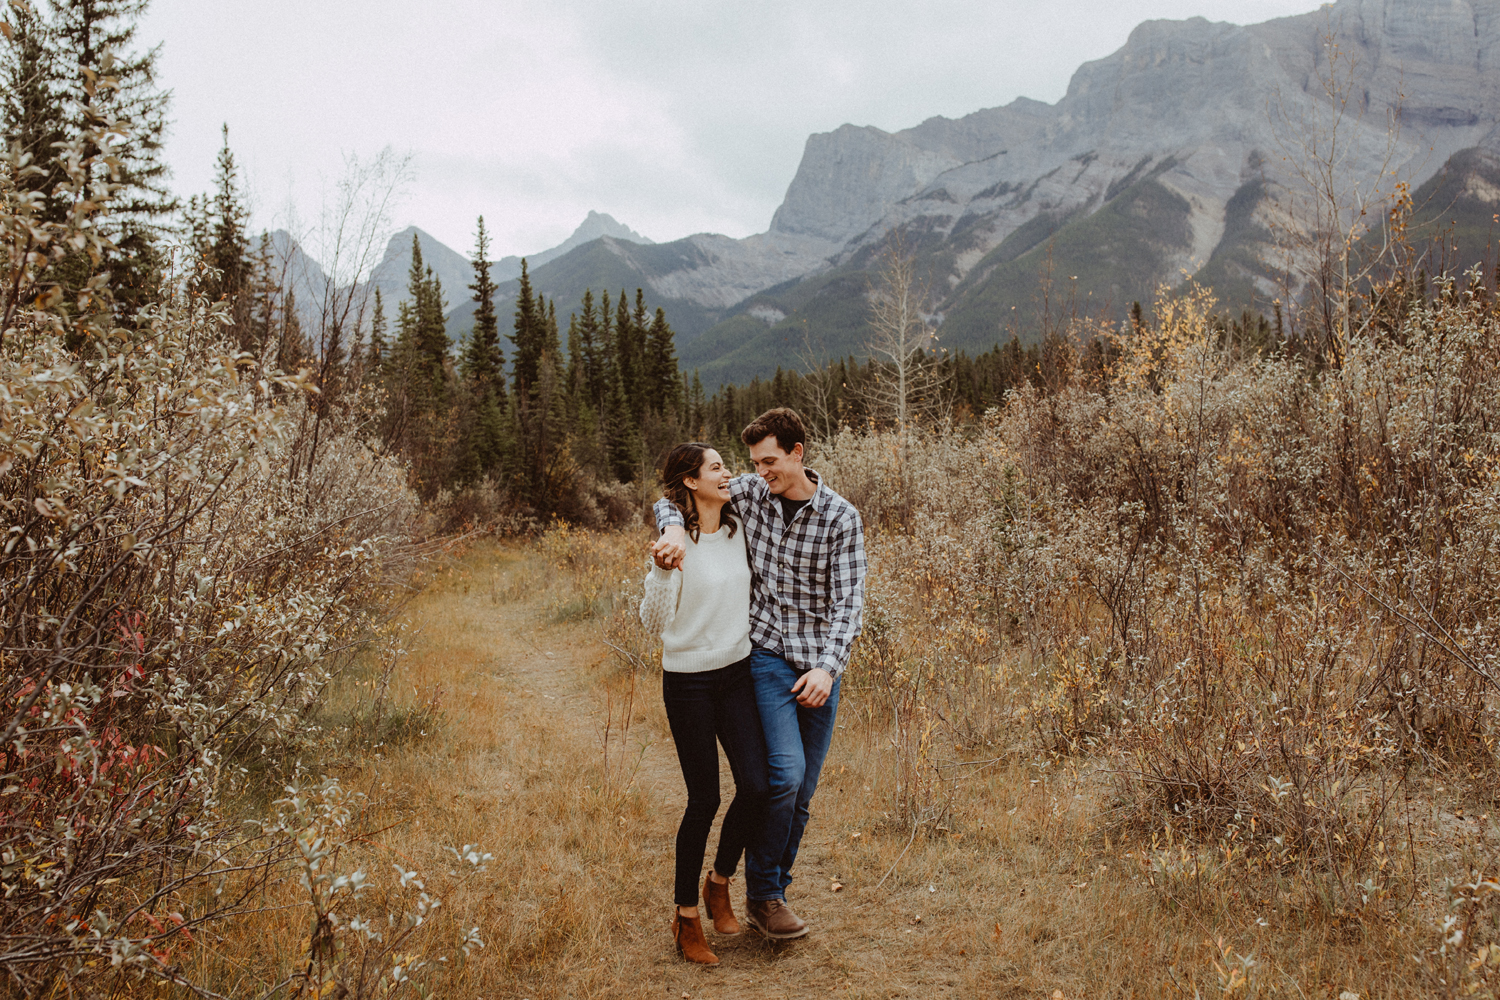 A couple walking in the mountains